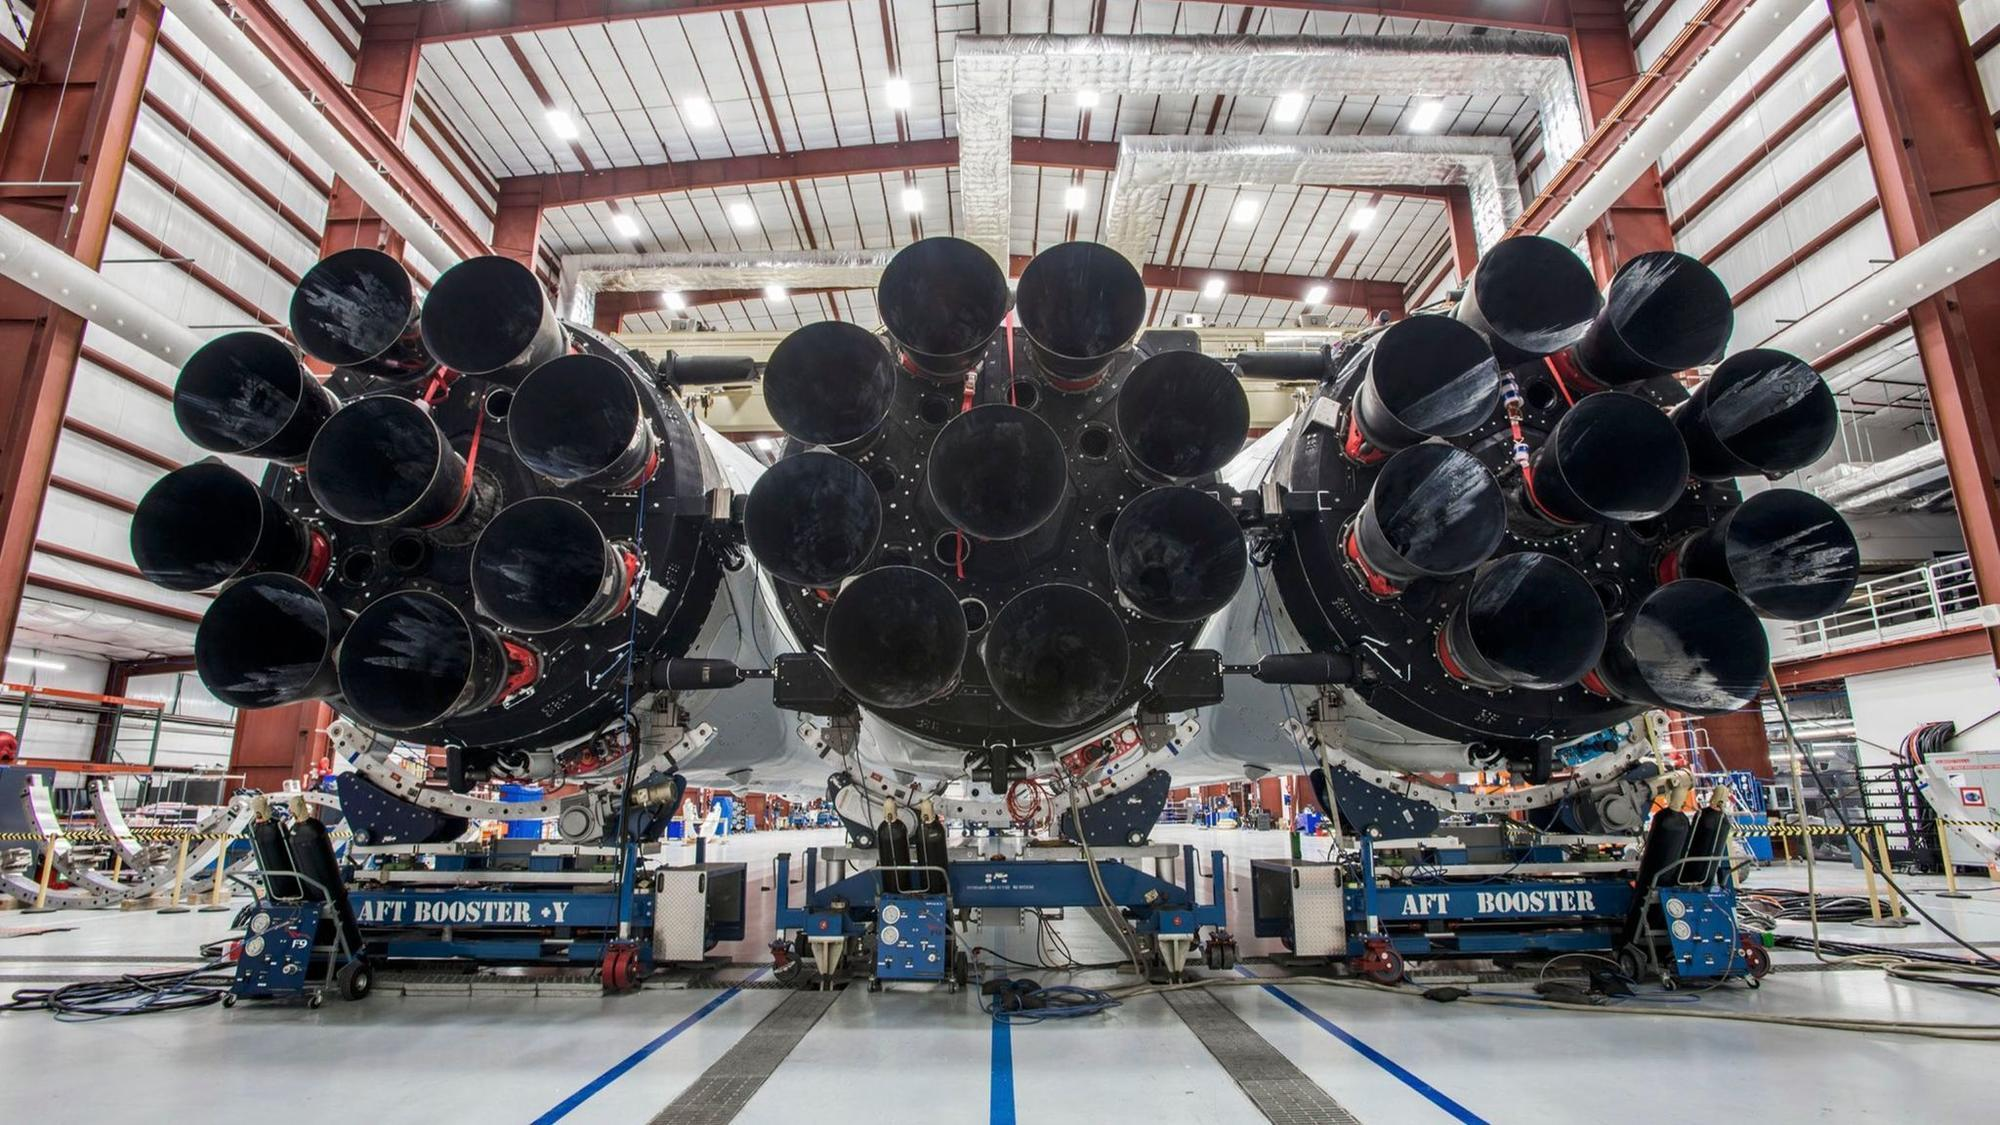 The Falcon Heavy rocket will be one of SpaceX's biggest tests yet